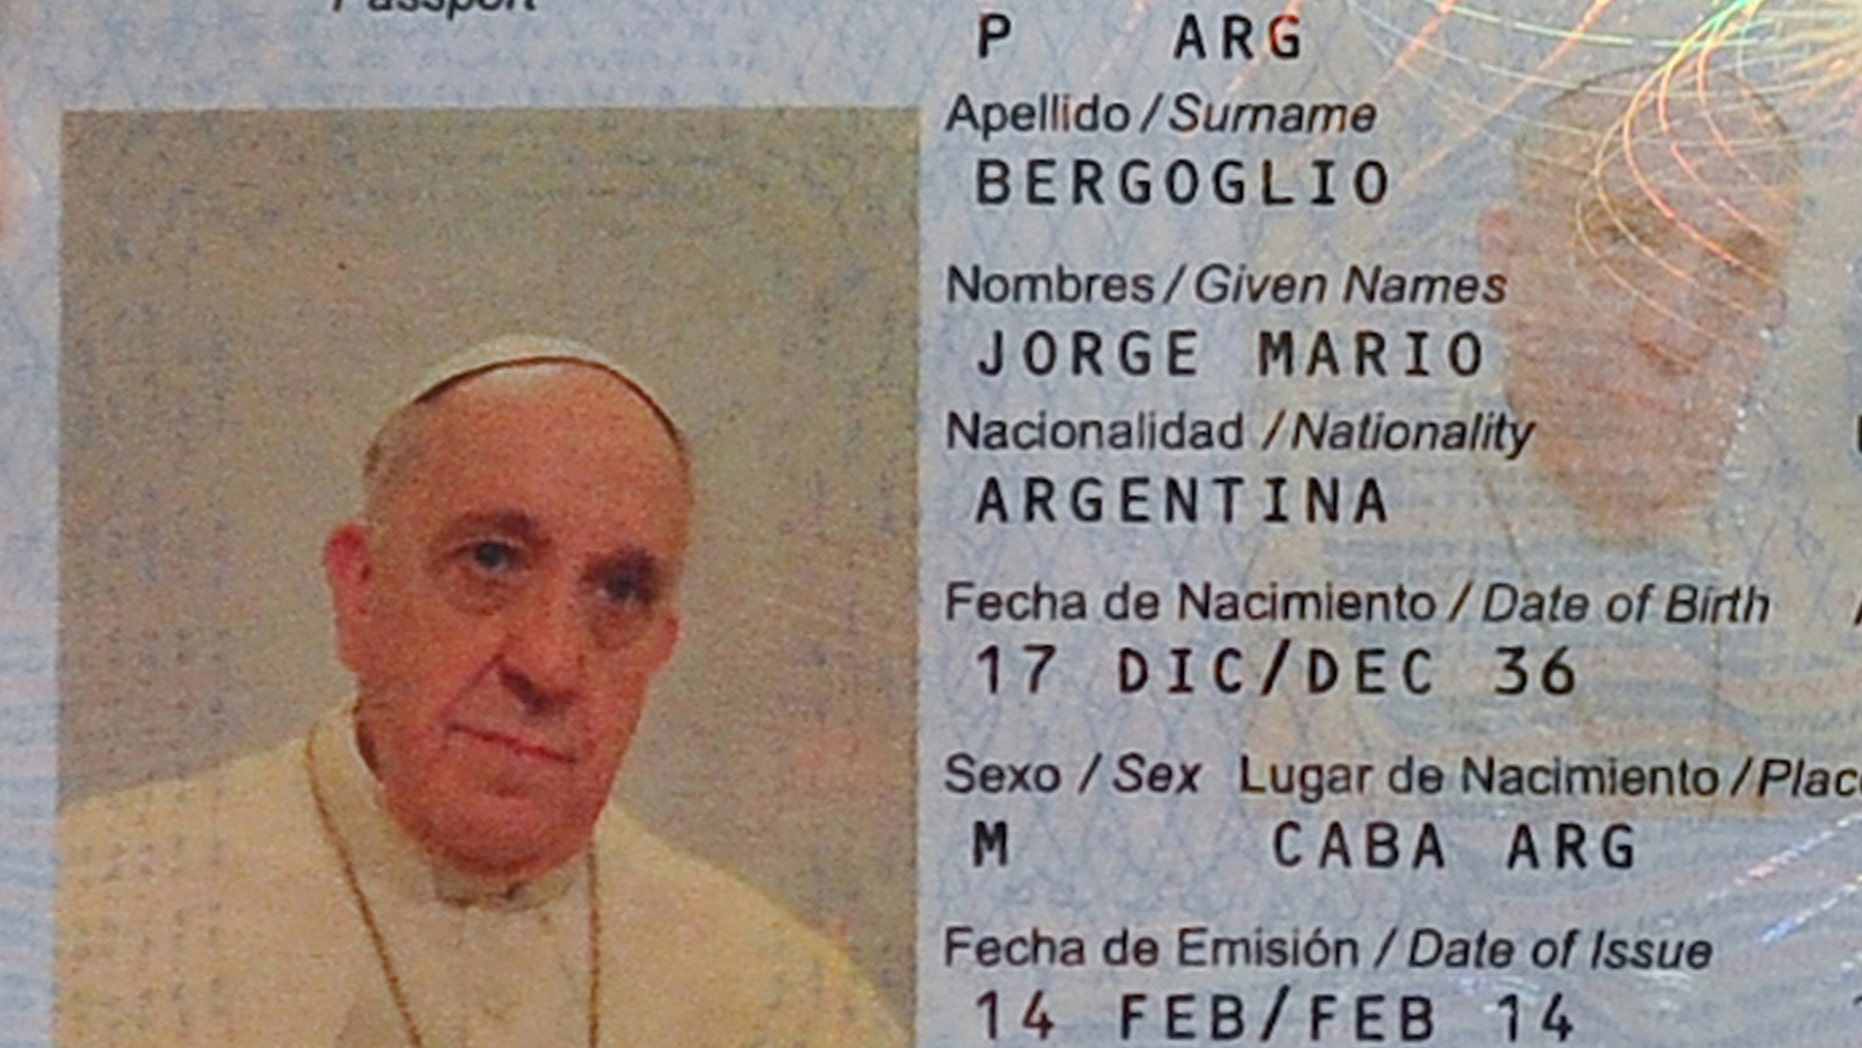 This photo released by Argentina's Interior Ministry shows the new passport of Jorge Mario Bergoglio, Pope Francis, at the Argentine Consulate in Rome, Italy, Friday, Feb. 14, 2014. Argentina's ambassador to the Holy See, Juan Pablo Cafiero said he and his deputy went to the Pope's hotel in the Vatican gardens last Friday to take Francis' photo and digital fingerprints because the Pope's passport was due to expire and he wanted to renew it.  (AP Photo/Argentina's Interior Ministry)